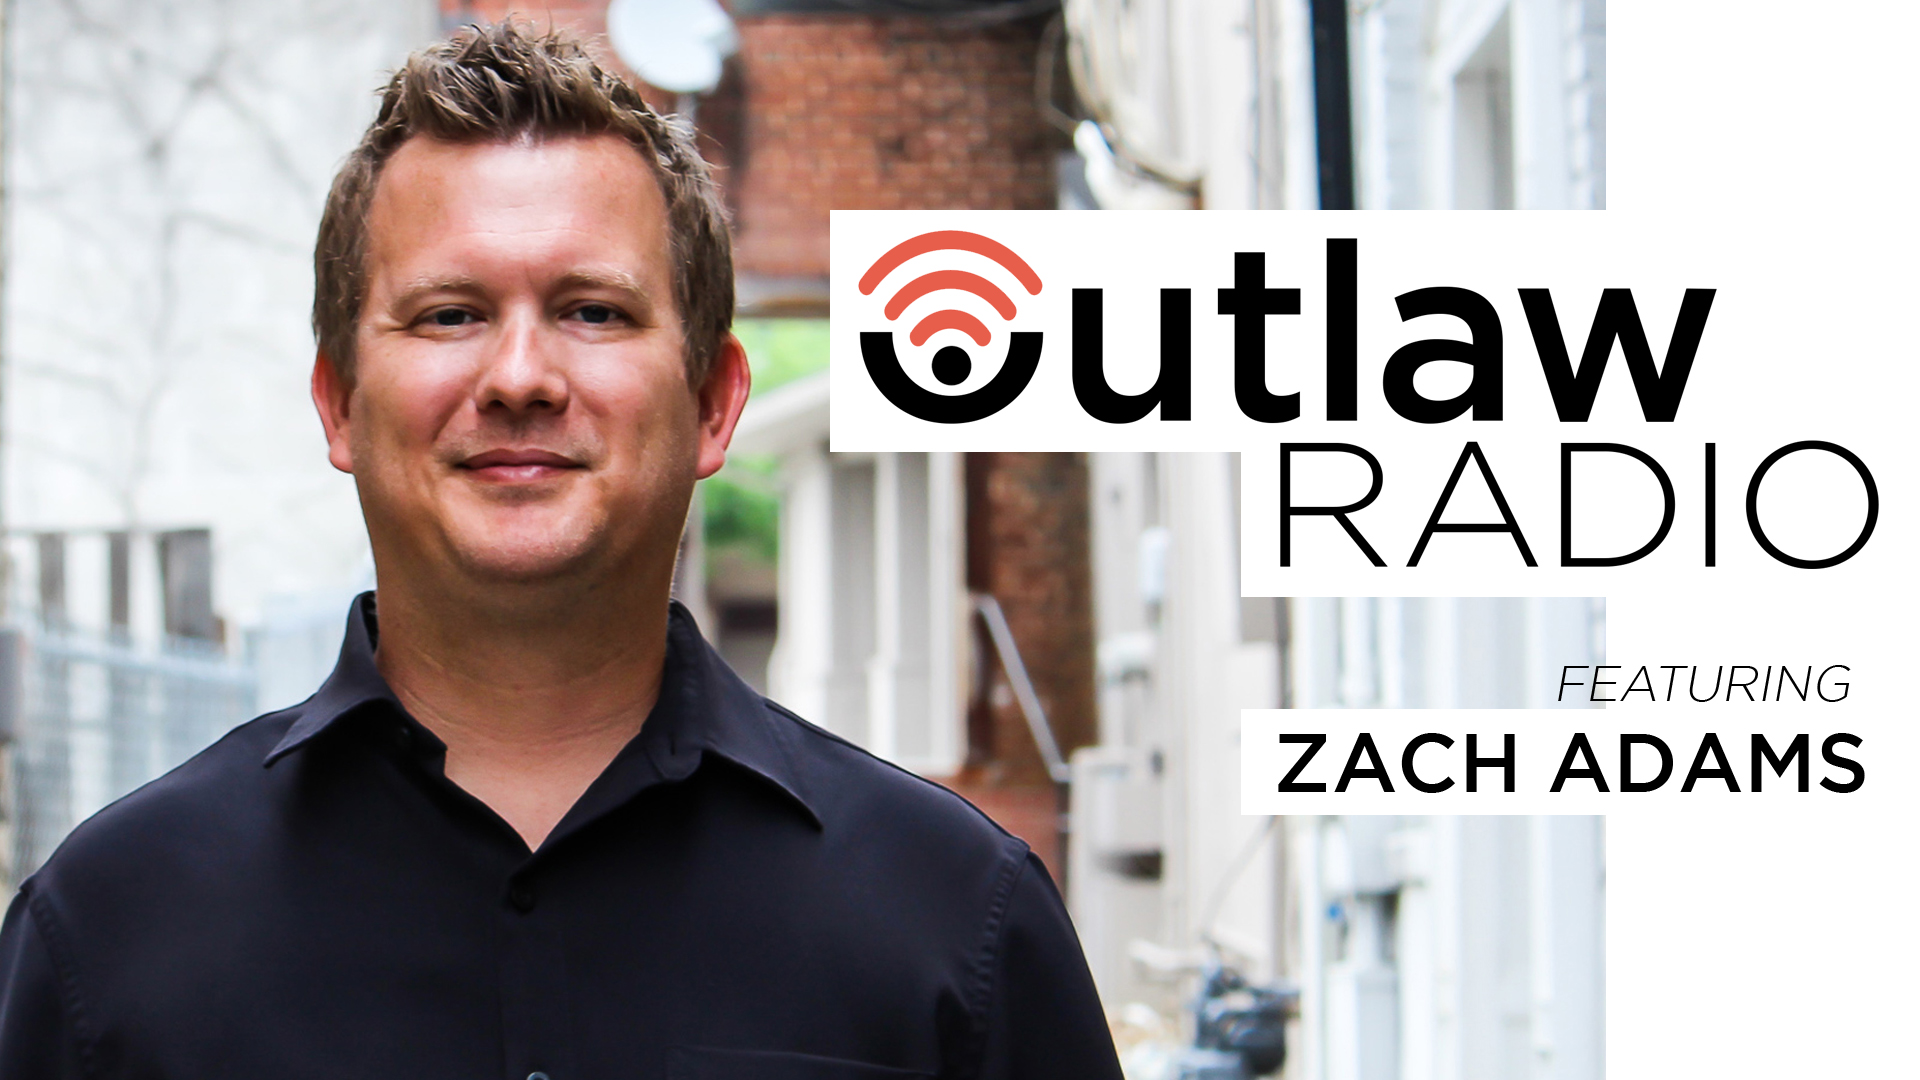 outlawradio-zach